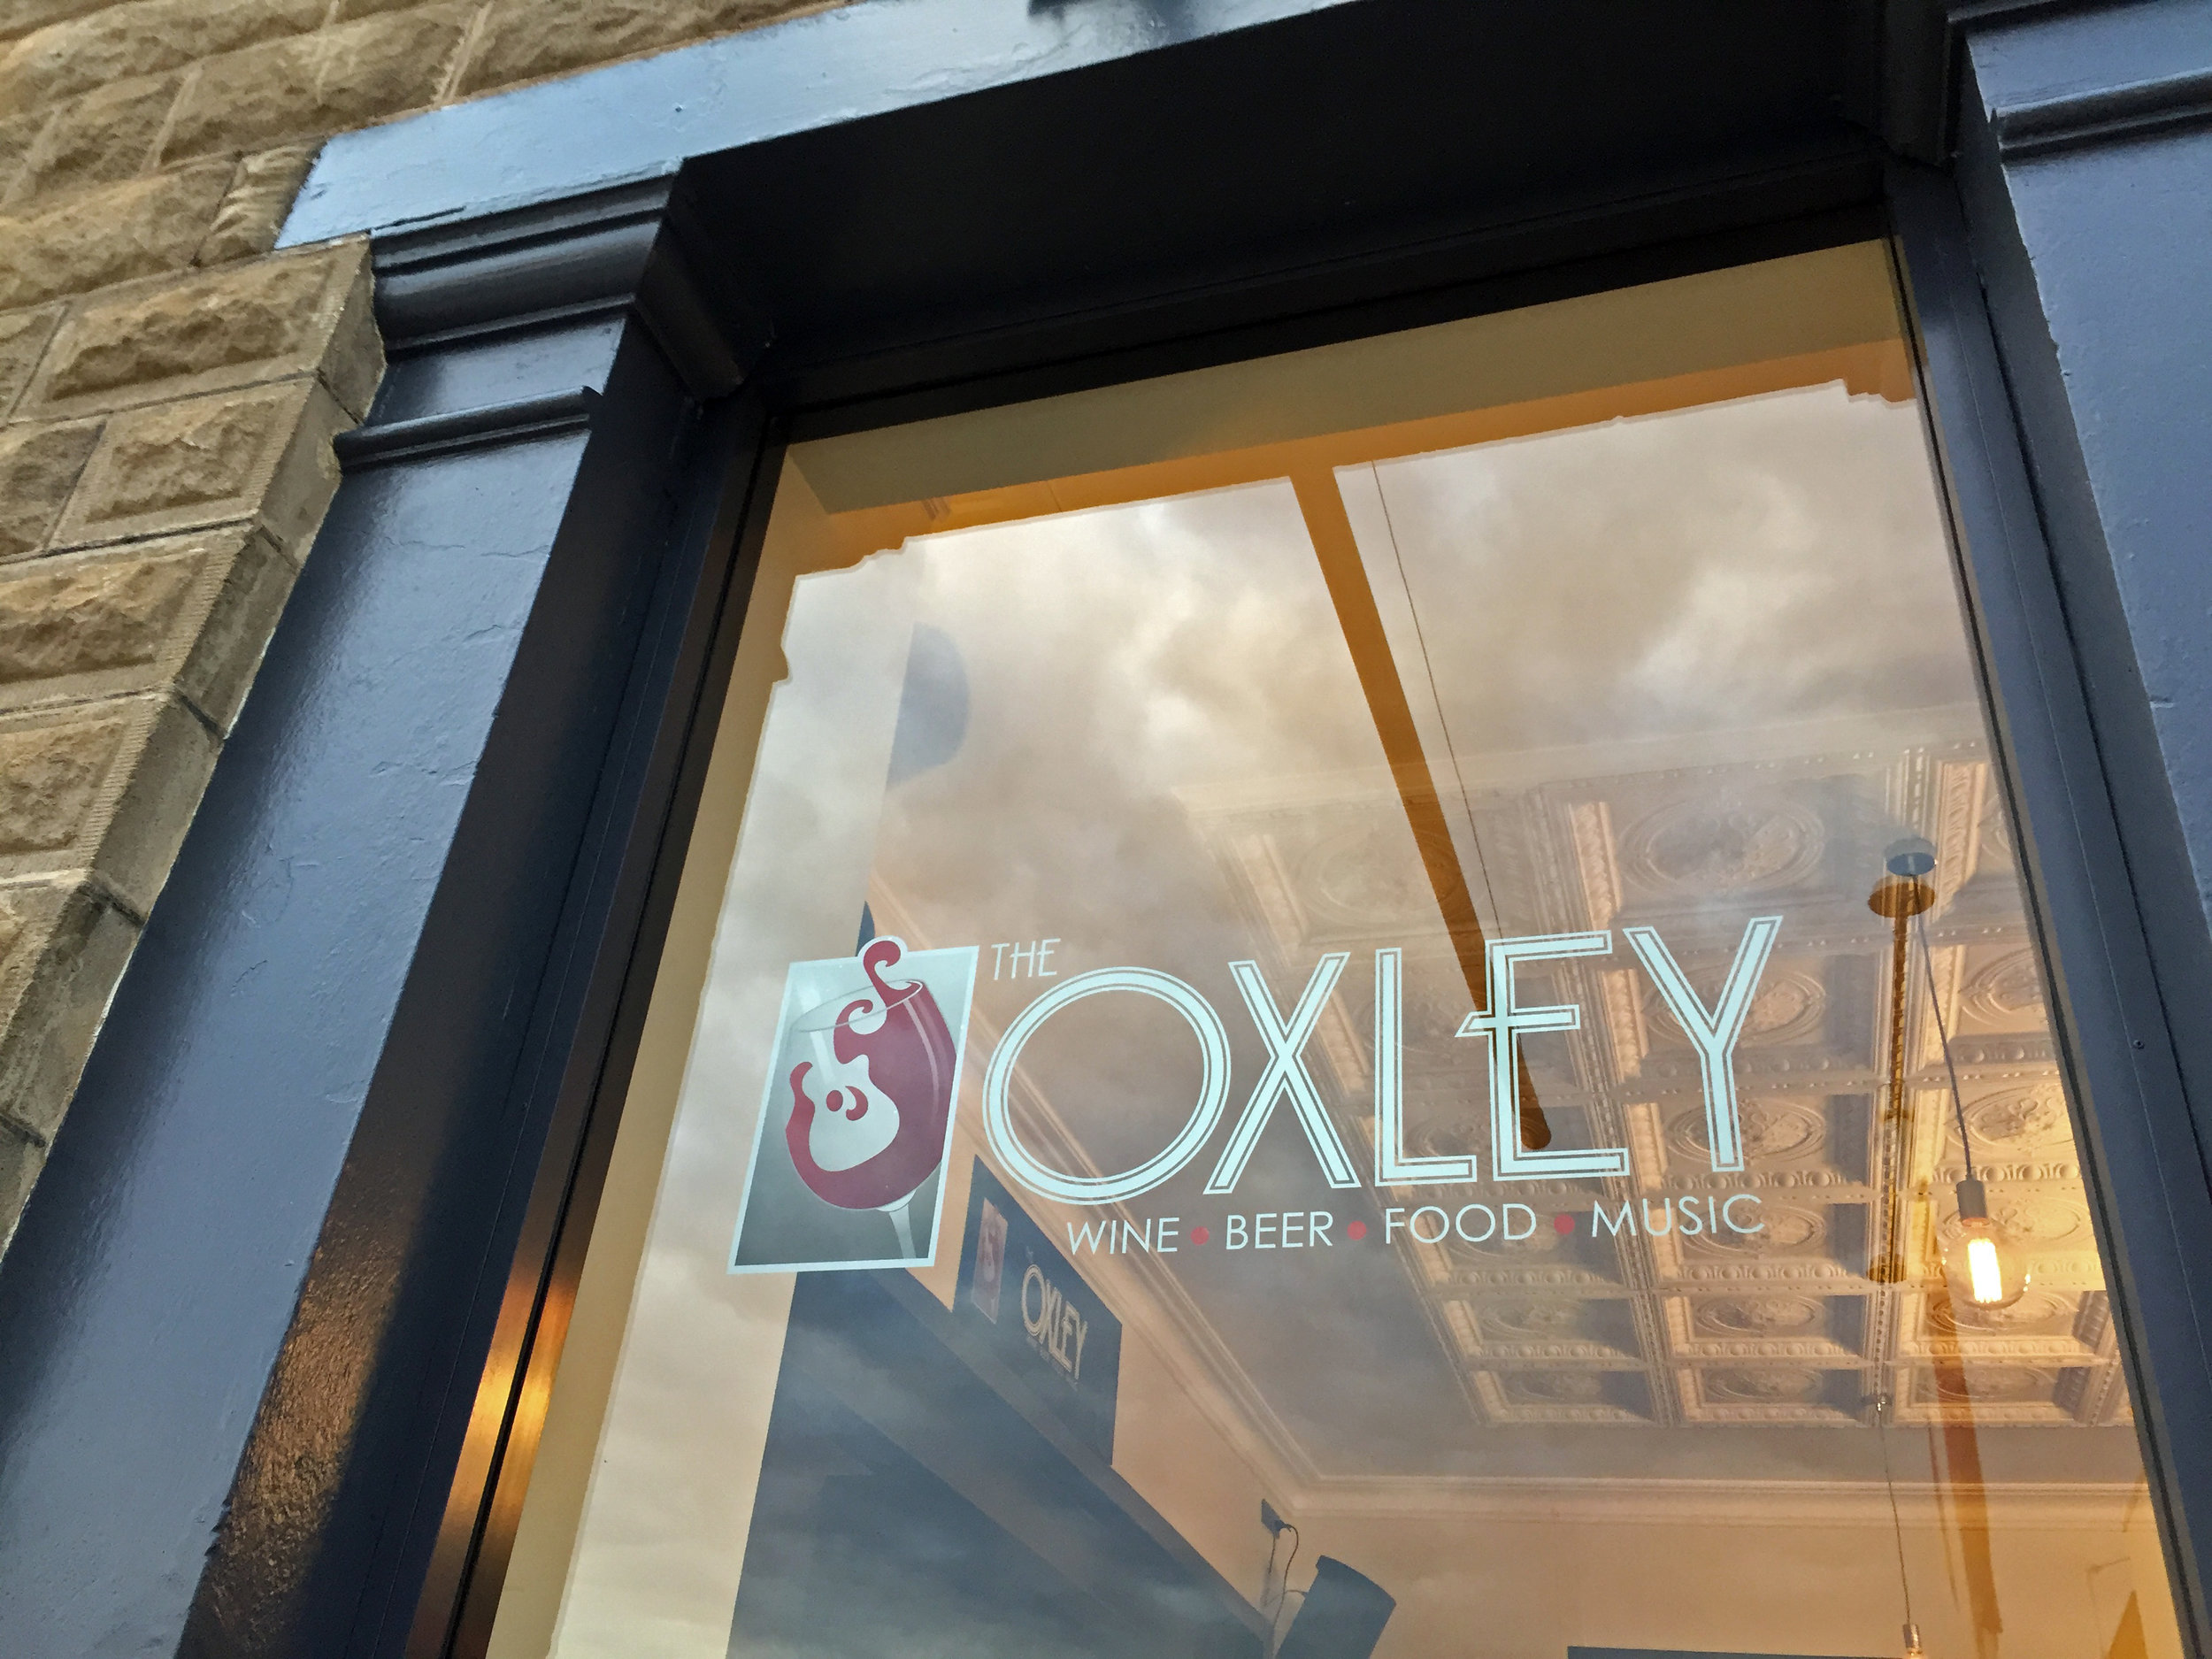 The-Oxley-photographs-building-marketing-promo.JPG